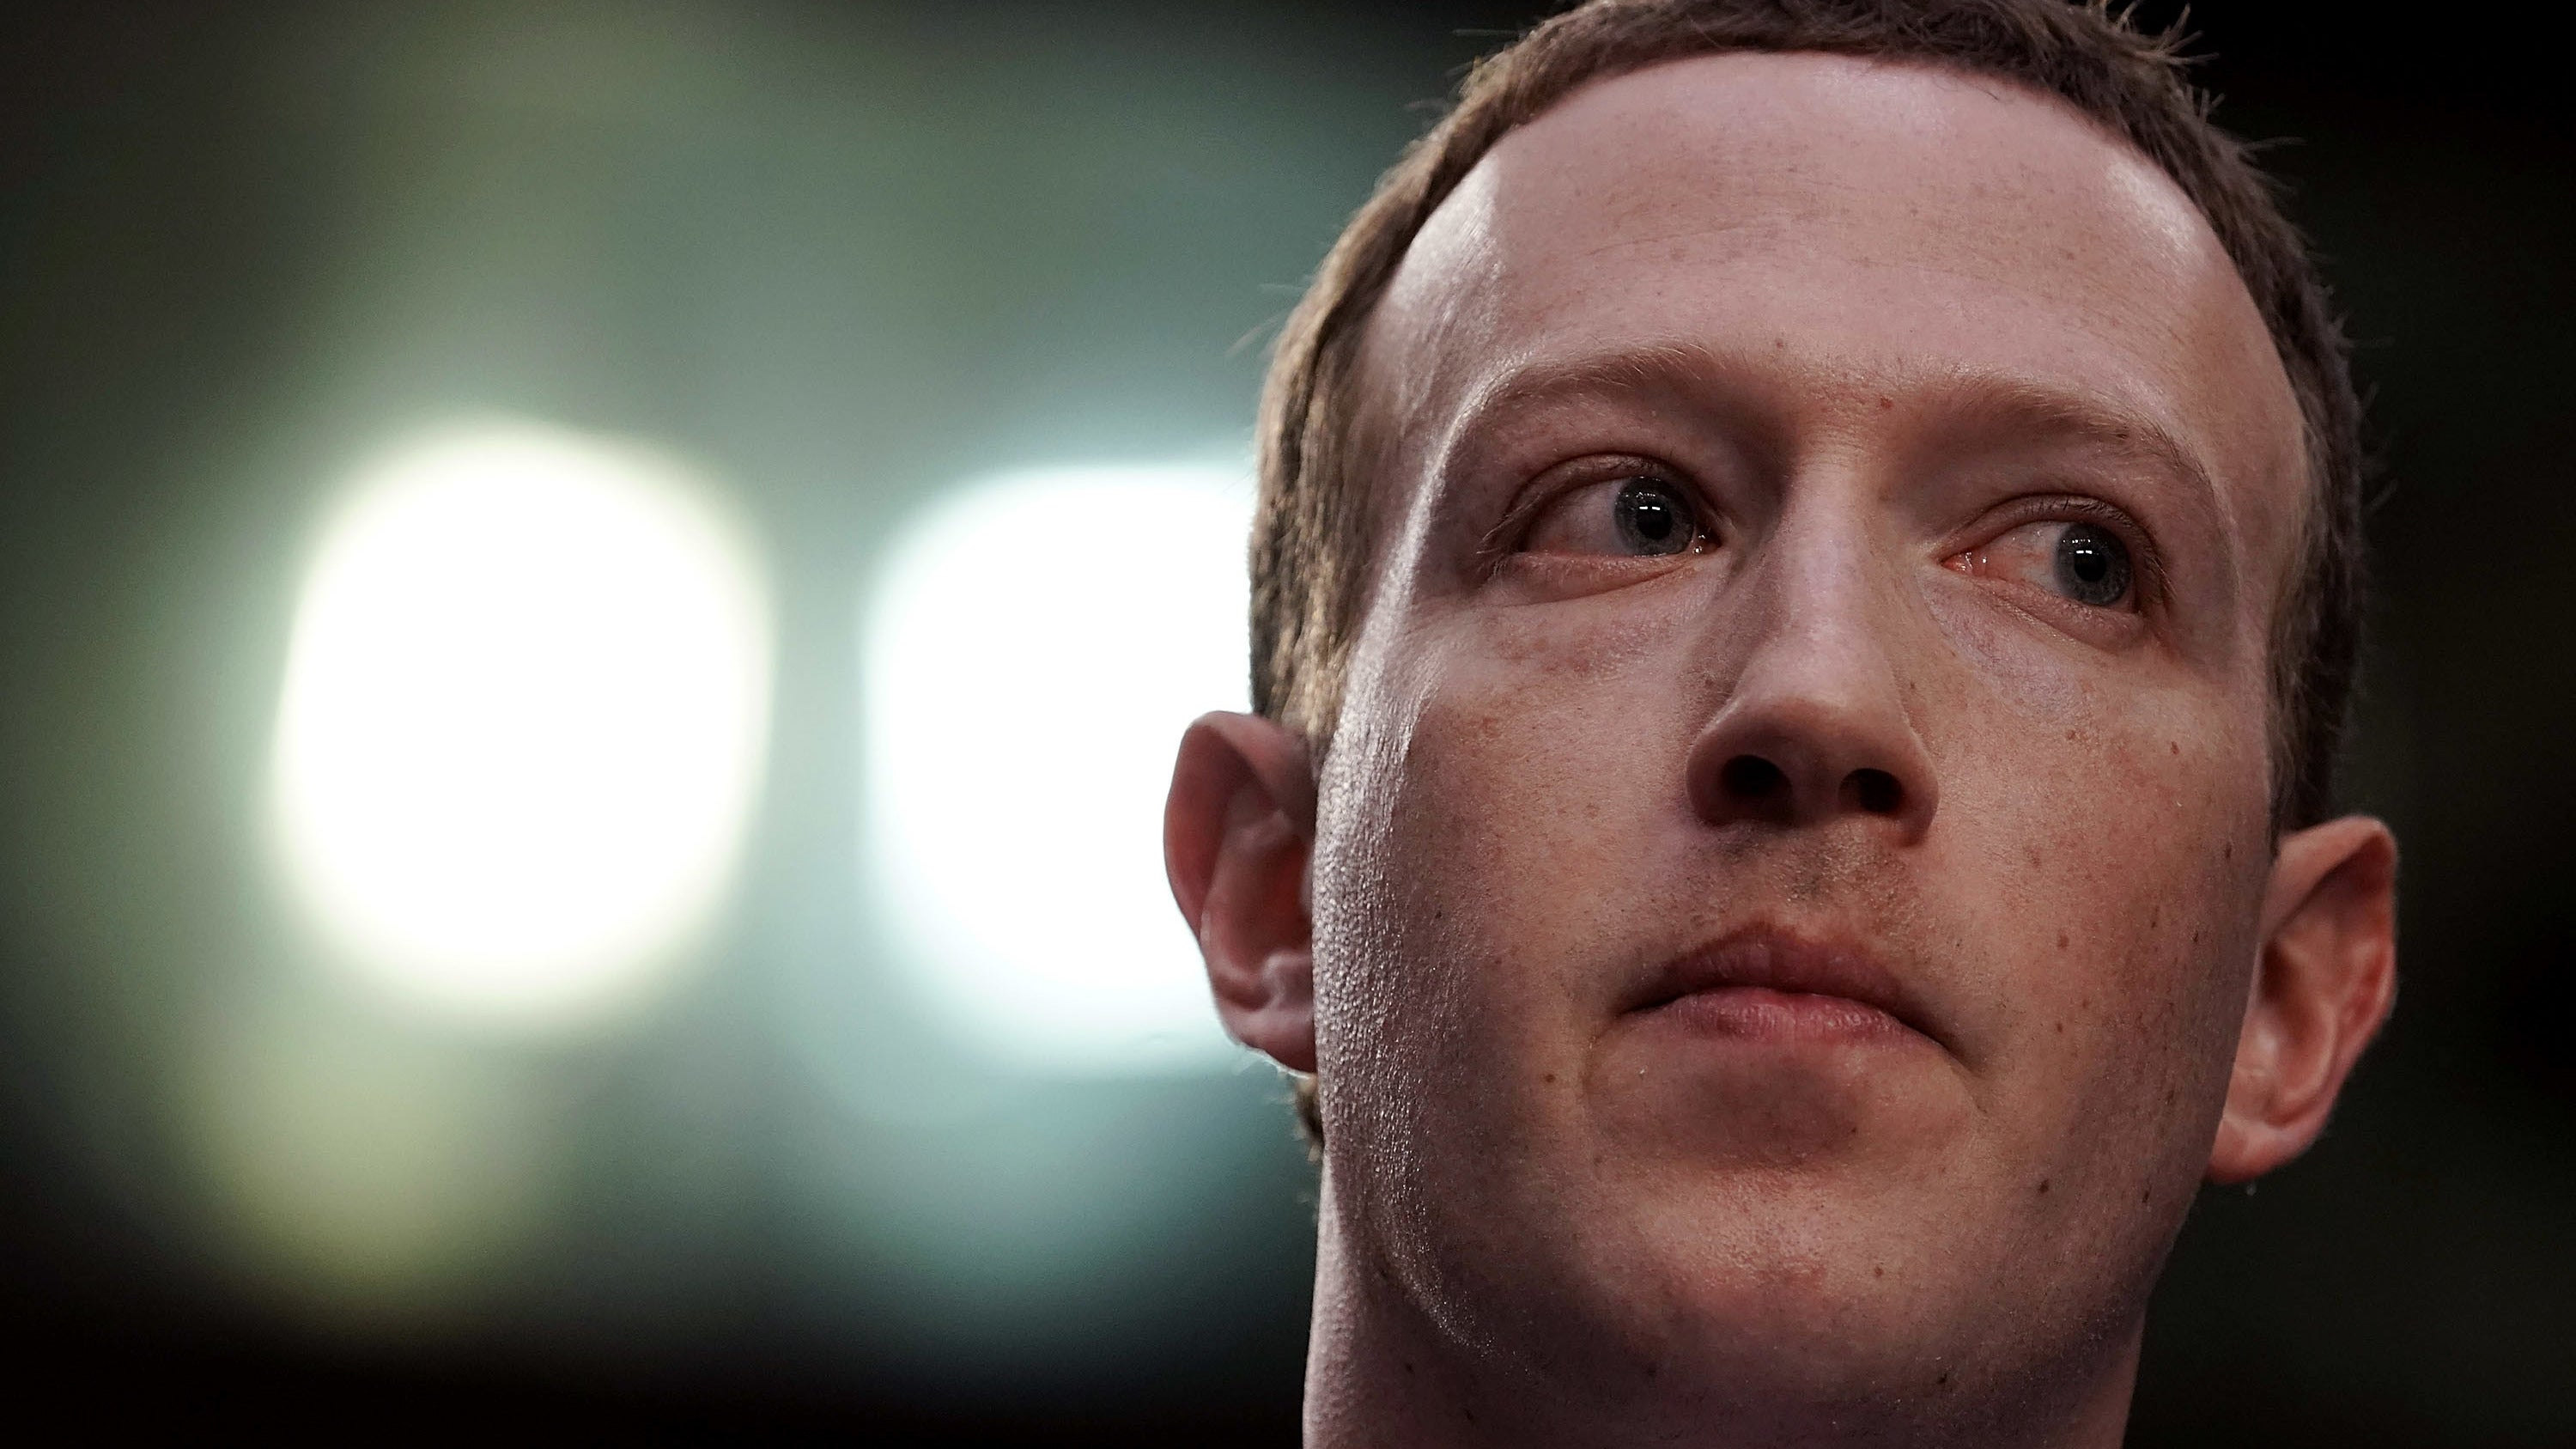 Facebook Says It Doesn't Sell Your Data, But It Considered Selling Access To It, Documents Show